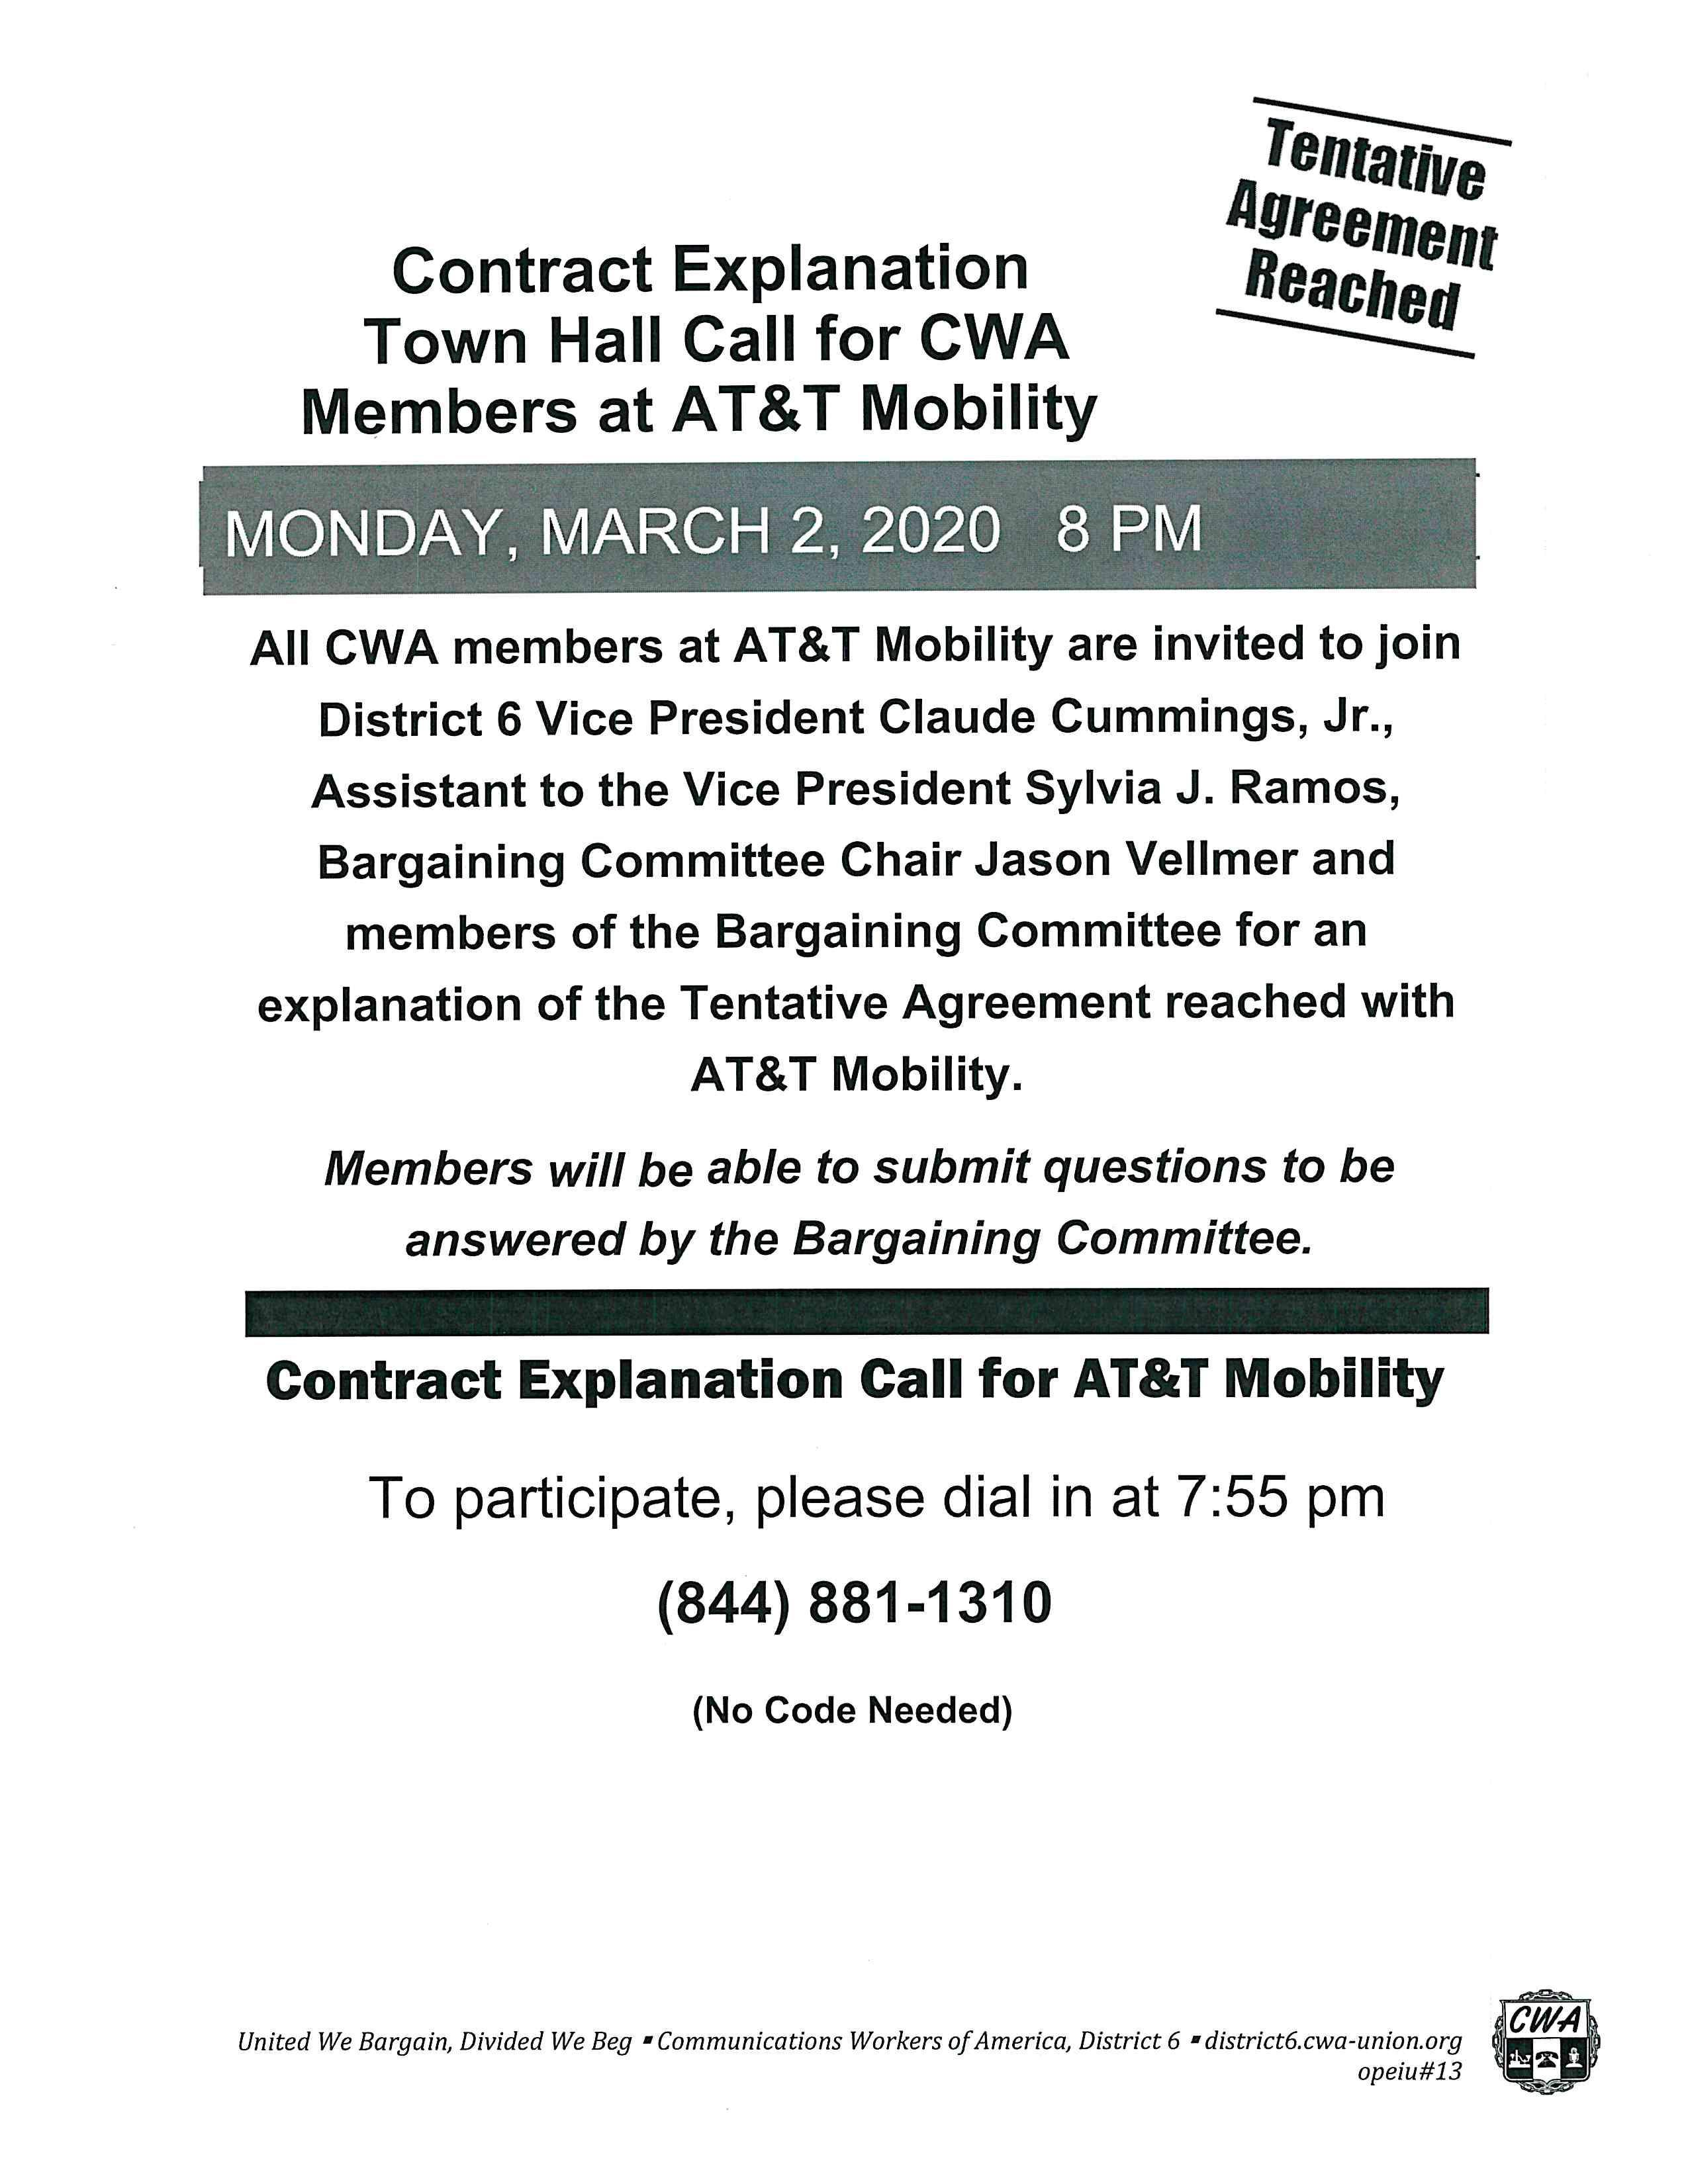 Information for the Mobility Contract Explanation Town Hall Call